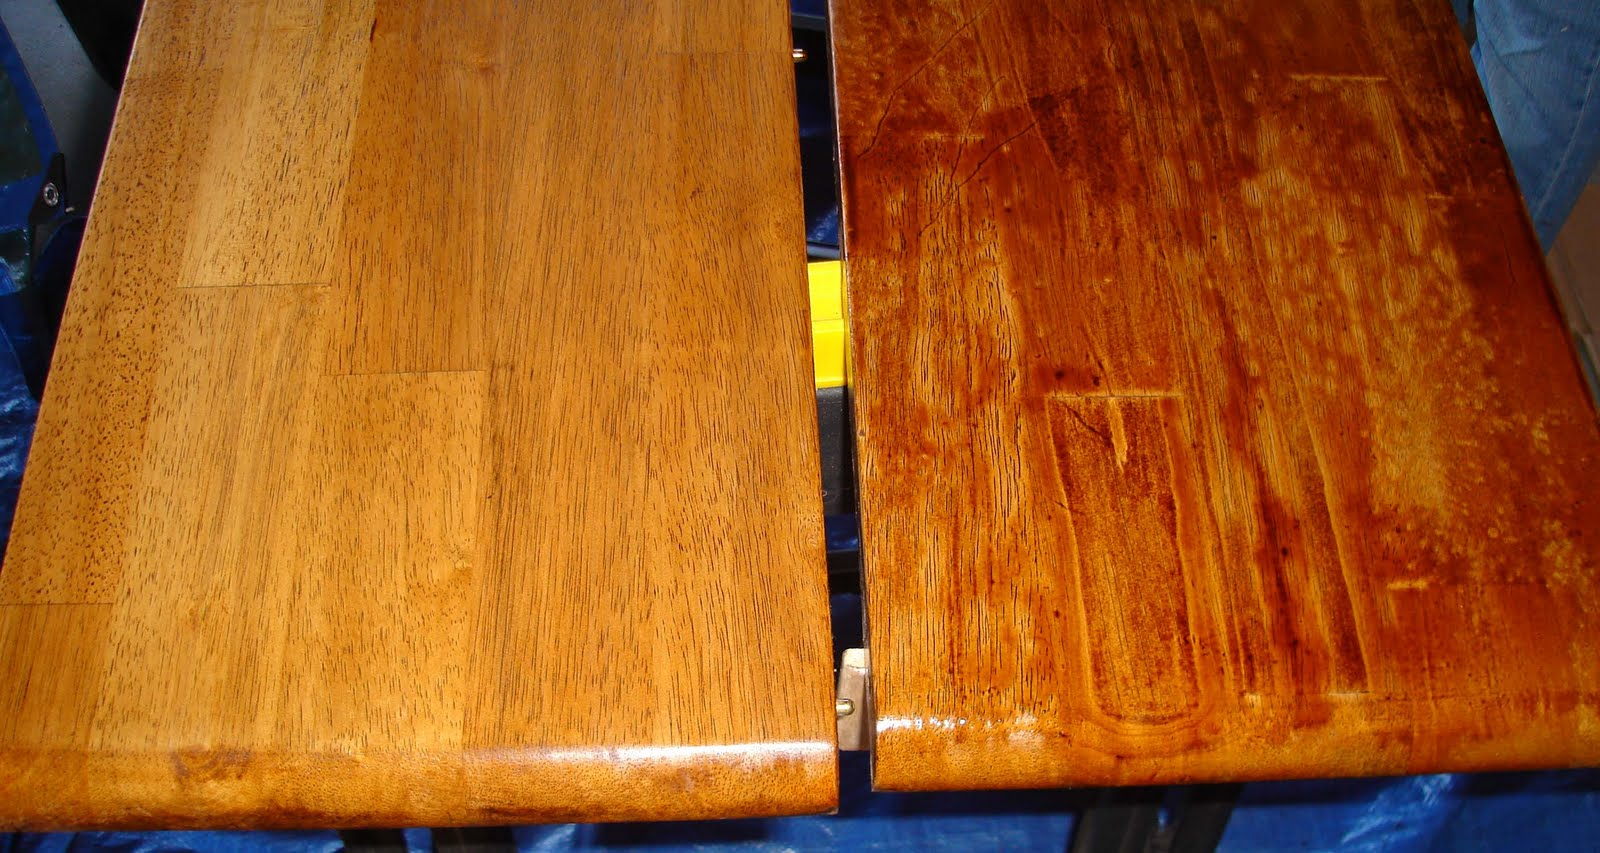 Can i stain over stain - After Two Coats Of Stain I Did Two Coats Of Oil Based Polyurethane Over The Top You Can See It Below Where The Tabletop Is Shiny